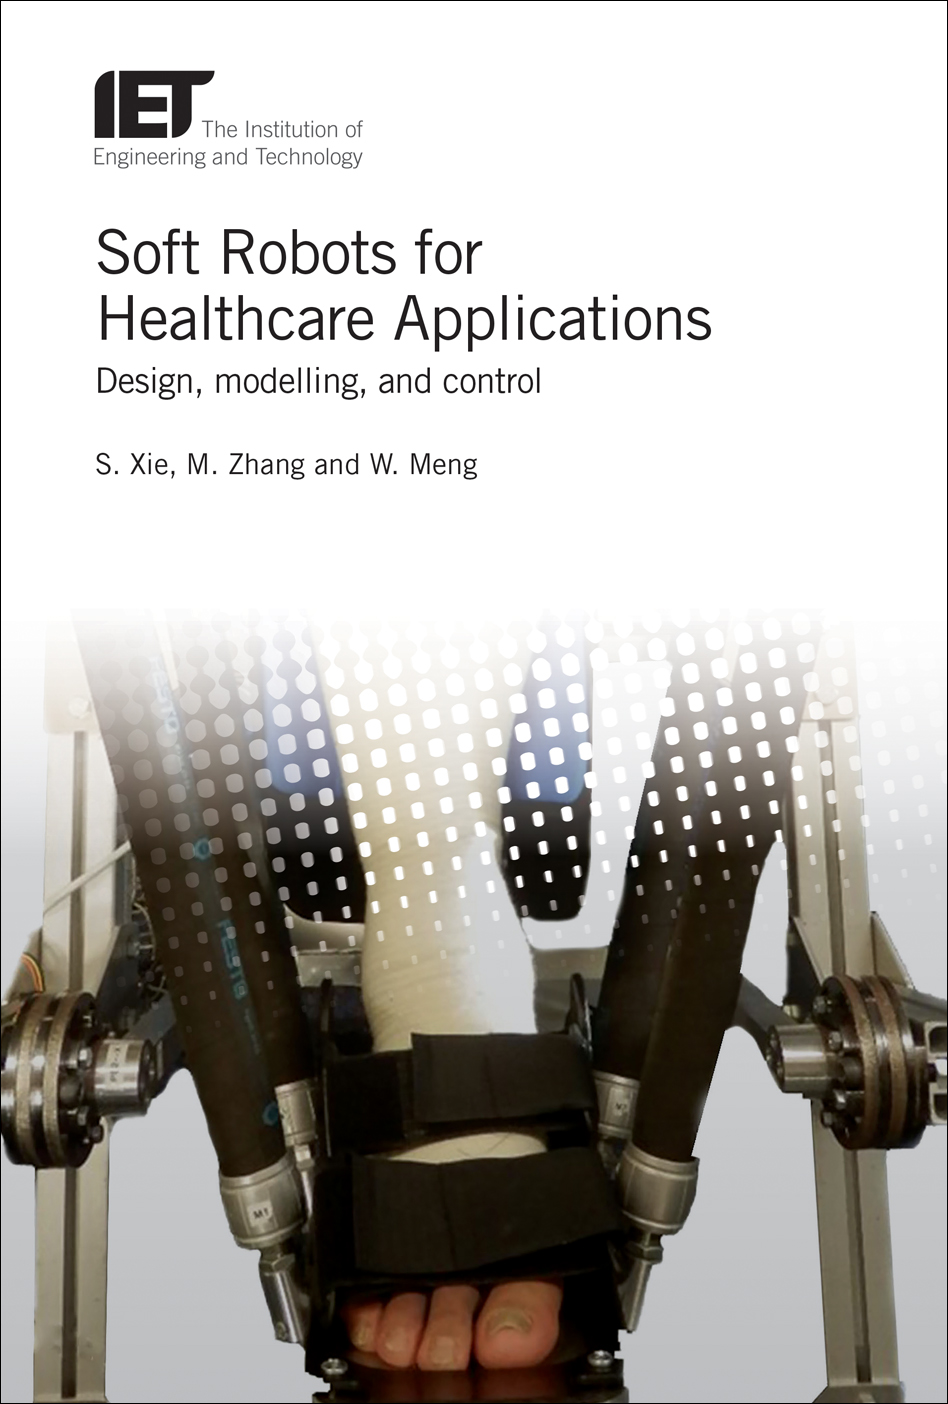 Soft Robots for Healthcare Applications, Design, modelling, and control